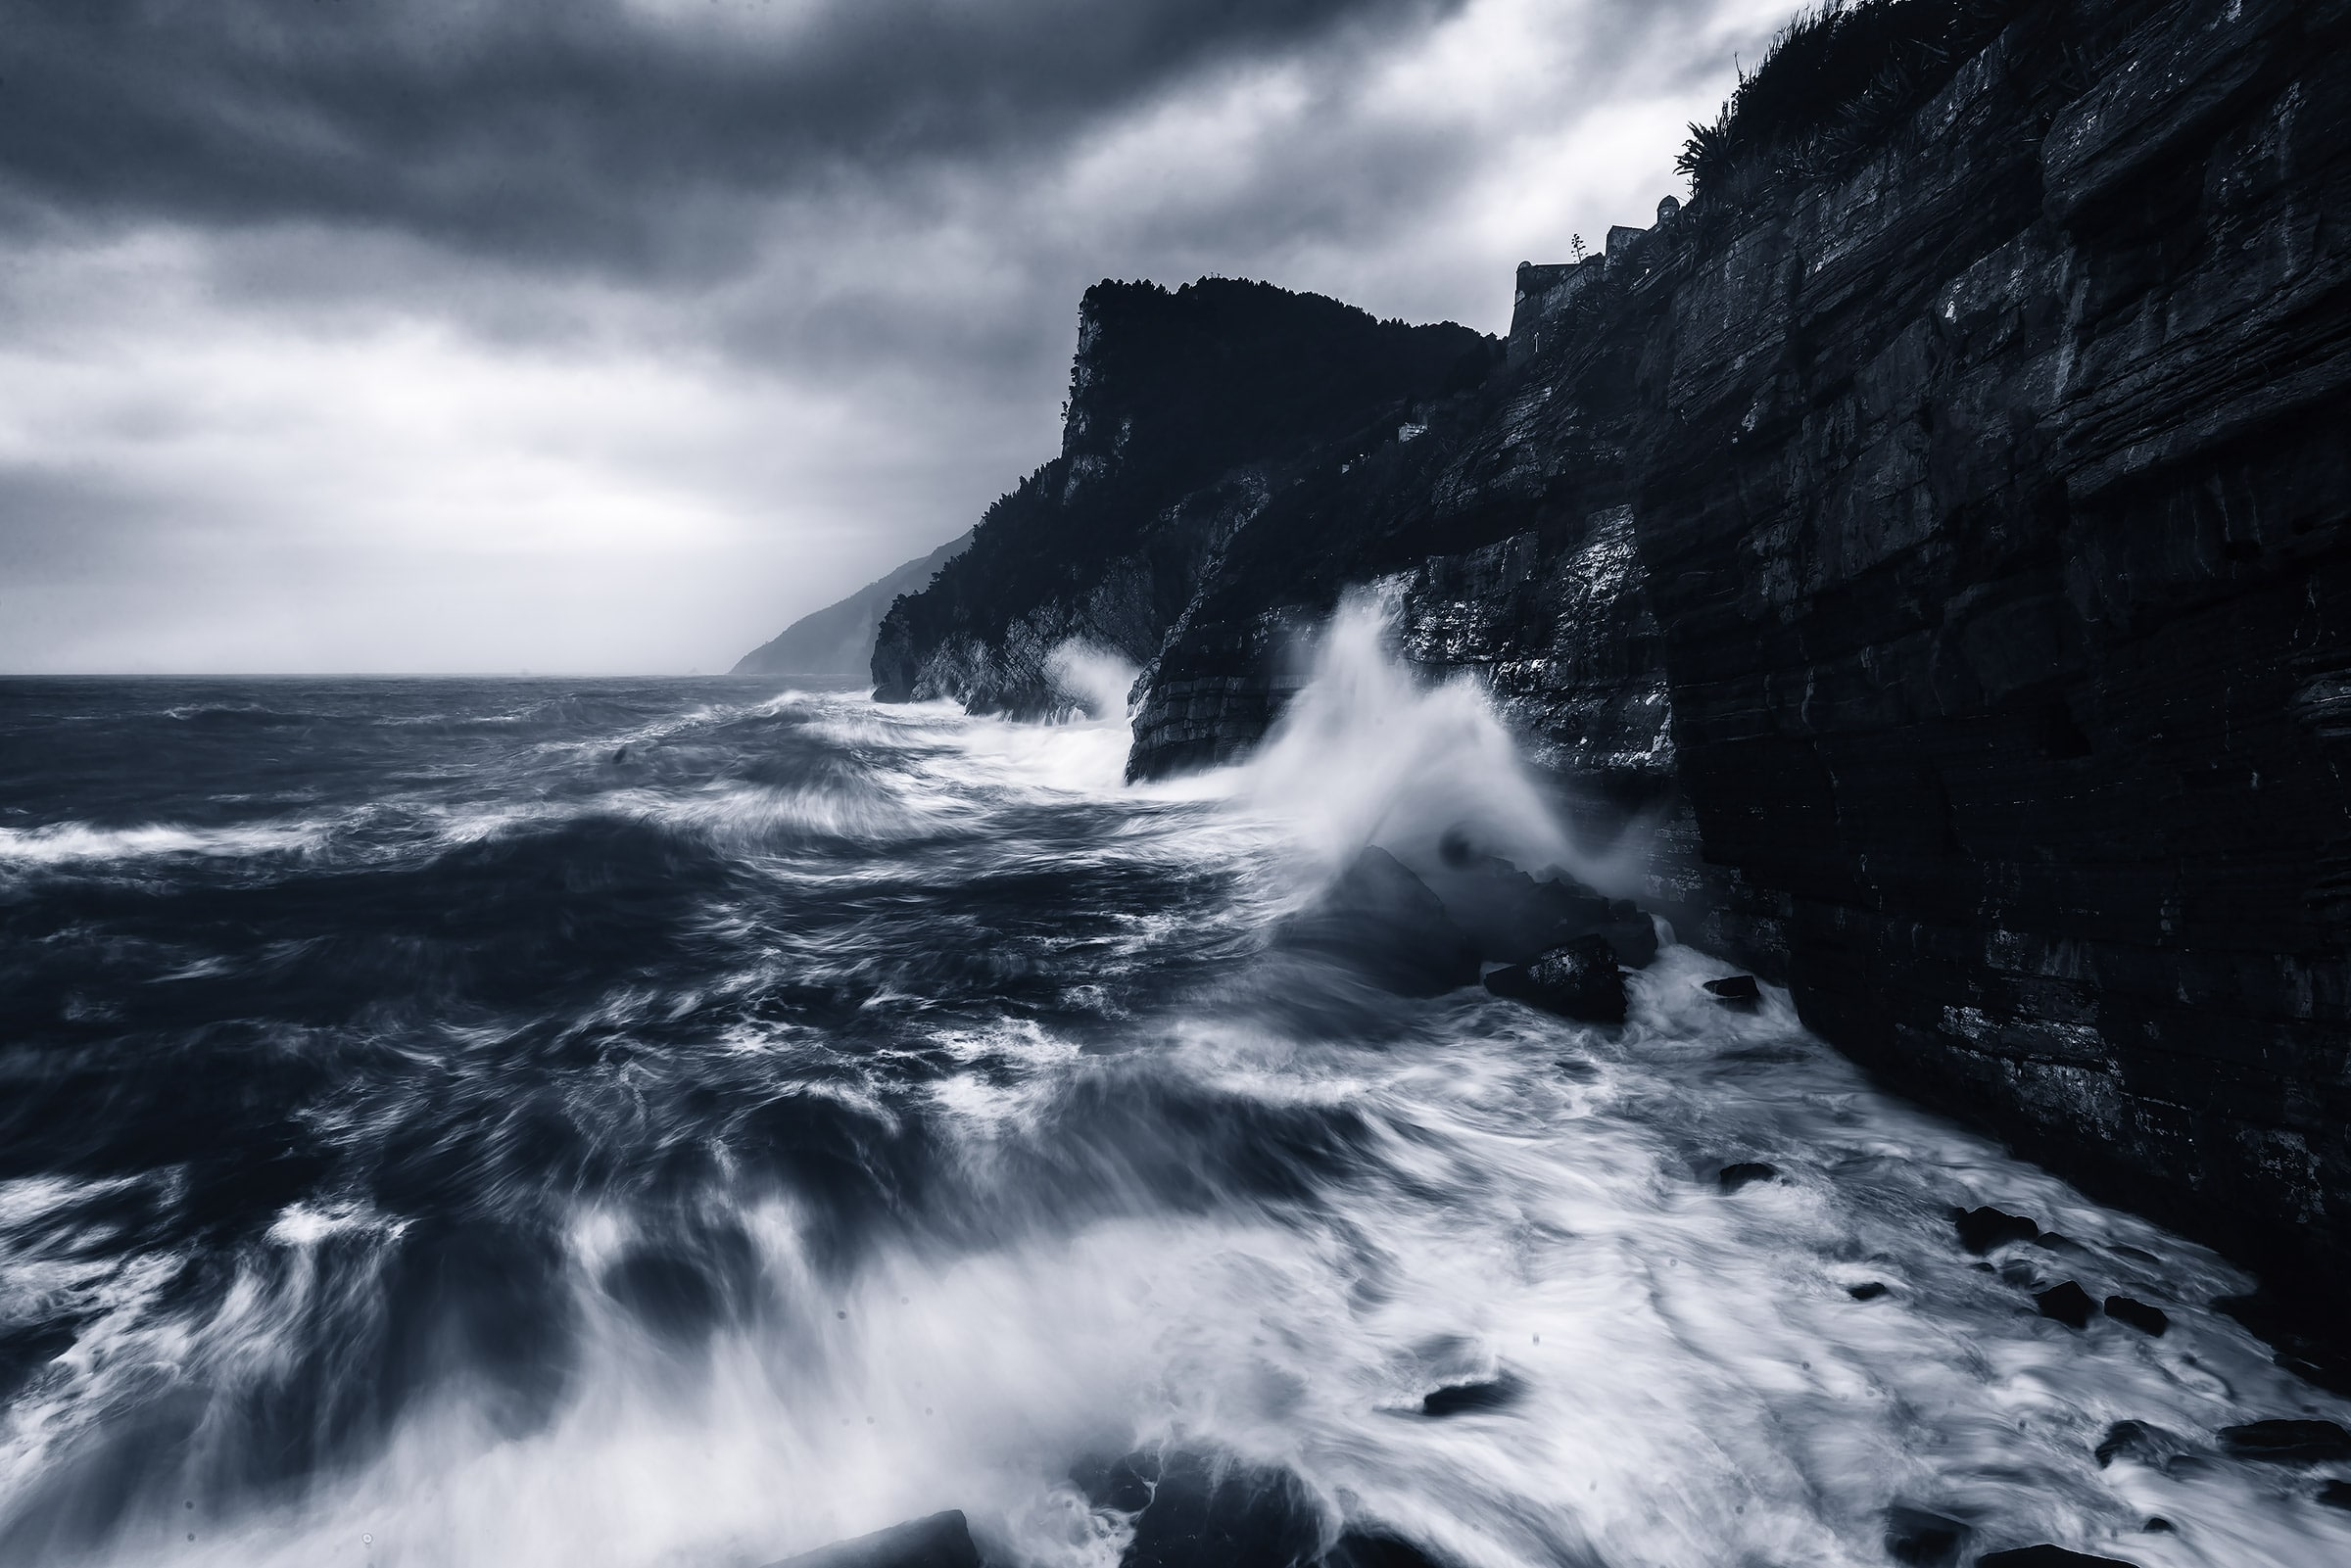 byrons cave during a sea storm in cinque terre